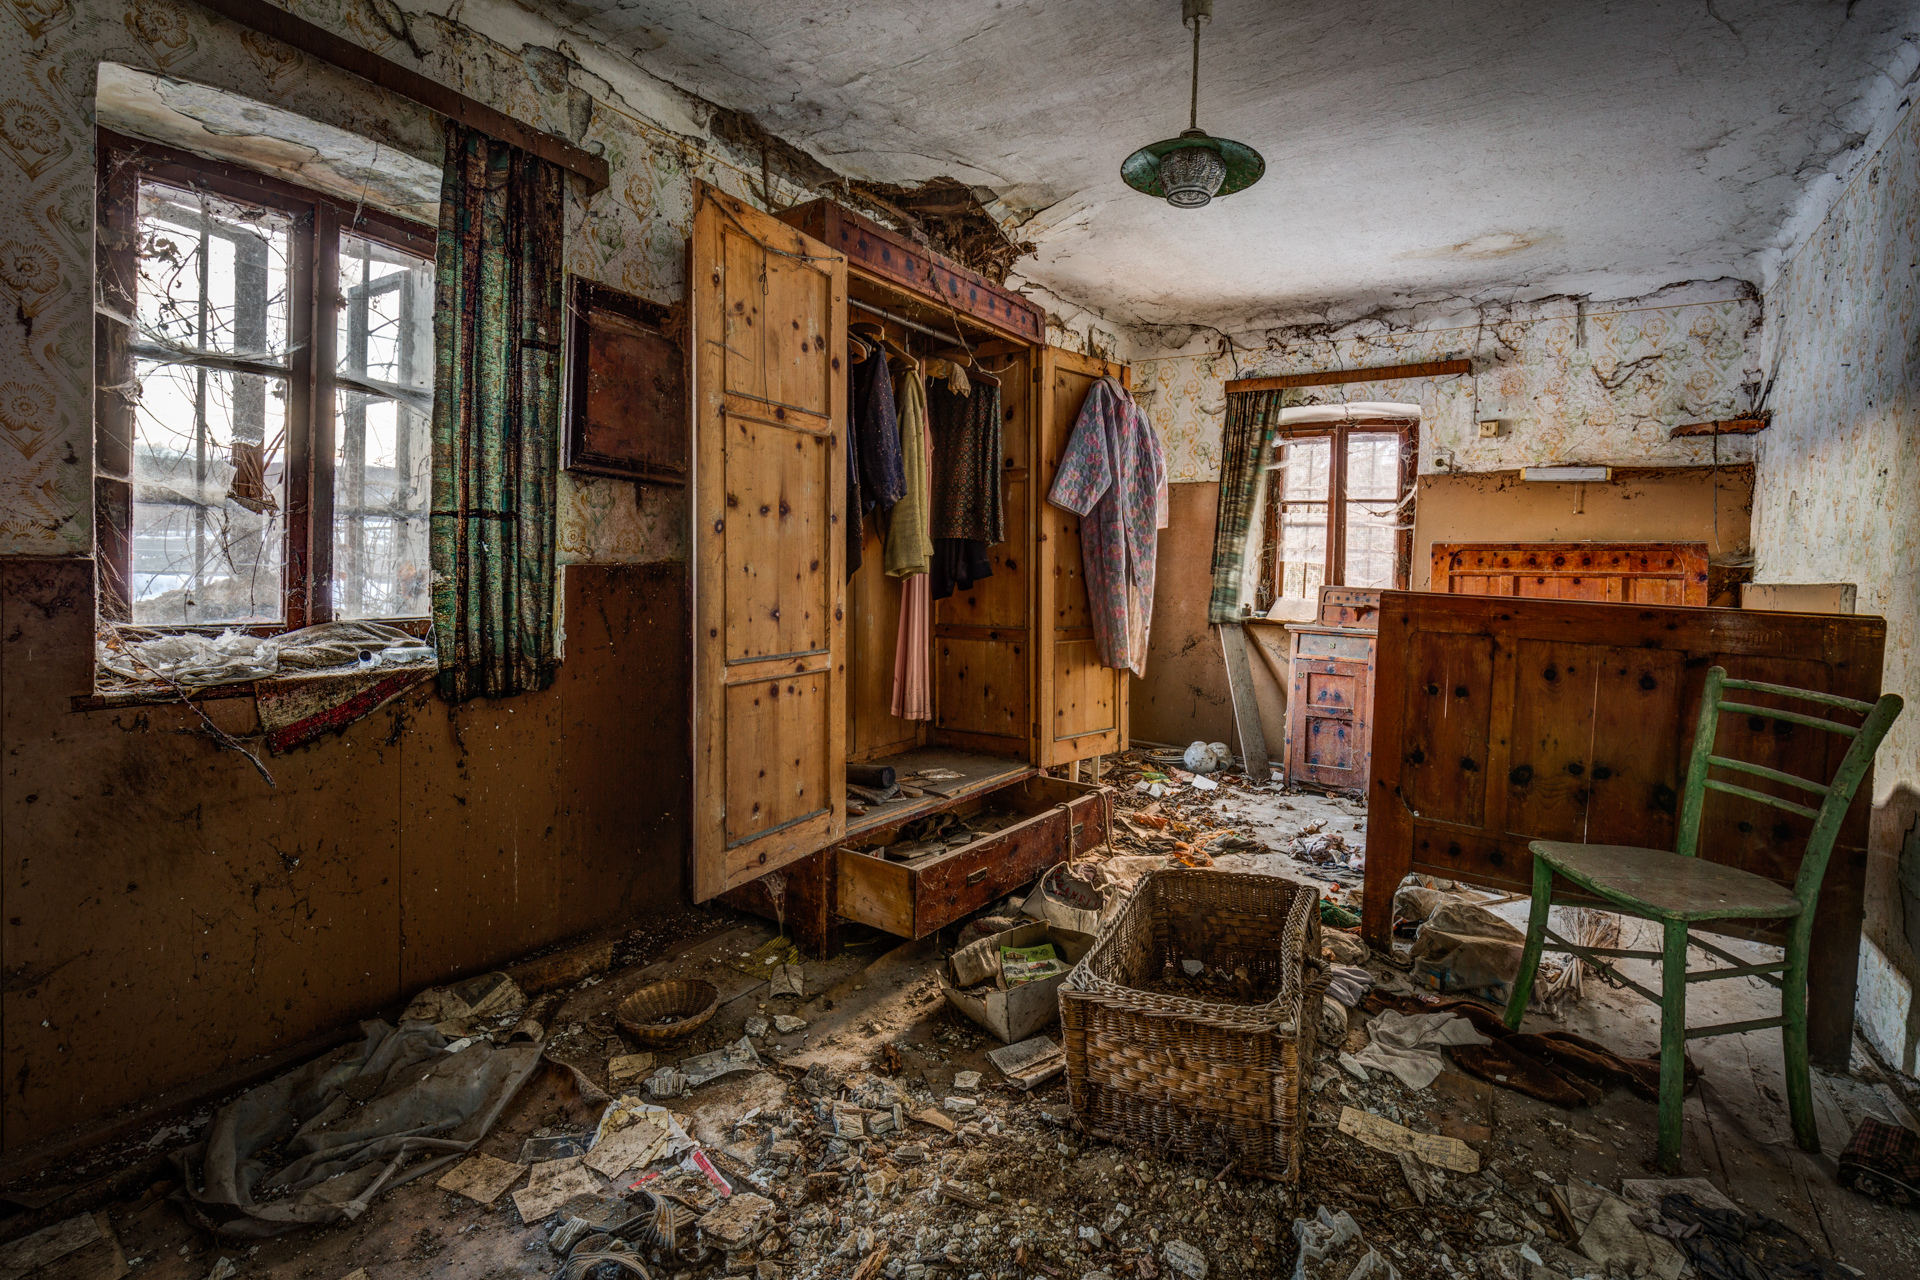 Urban Exploration - Farmhouse Bed and Breakfast - Battered Basketry